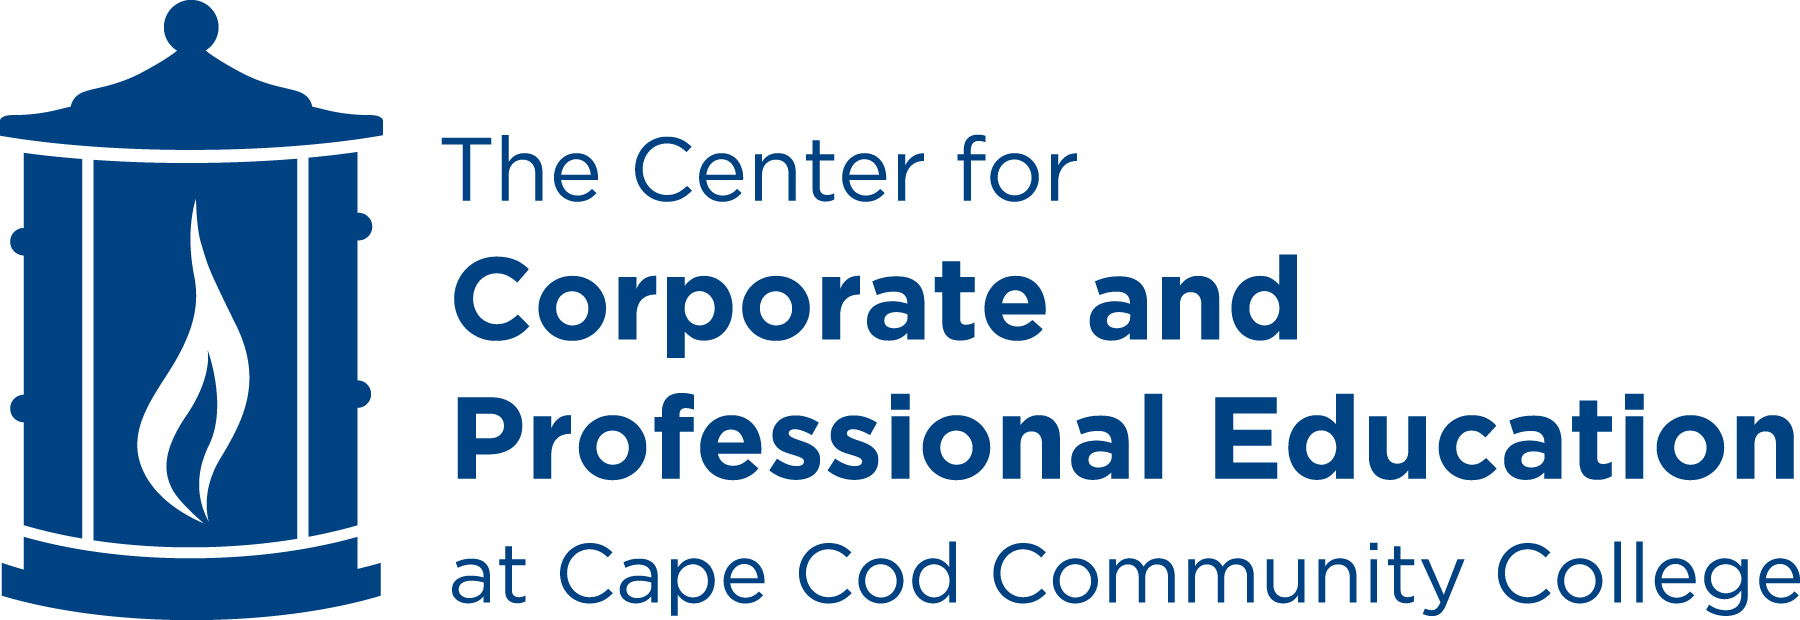 The Center for Corporate and Professional Education